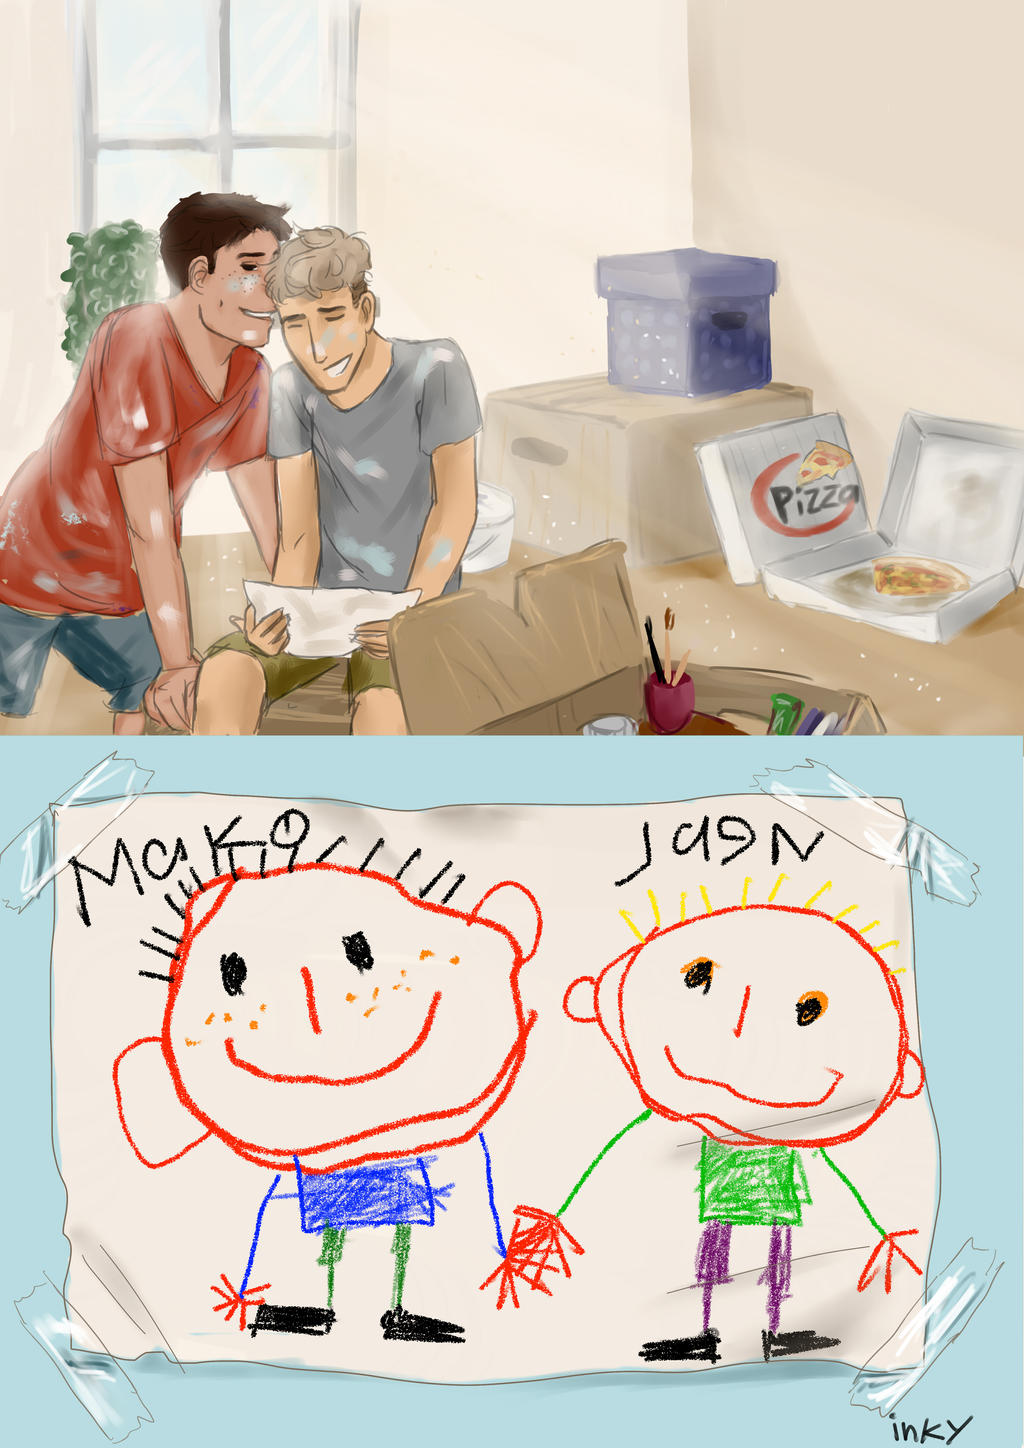 JeanMarco Week Day 2: Paint by ThroughMyThoughts